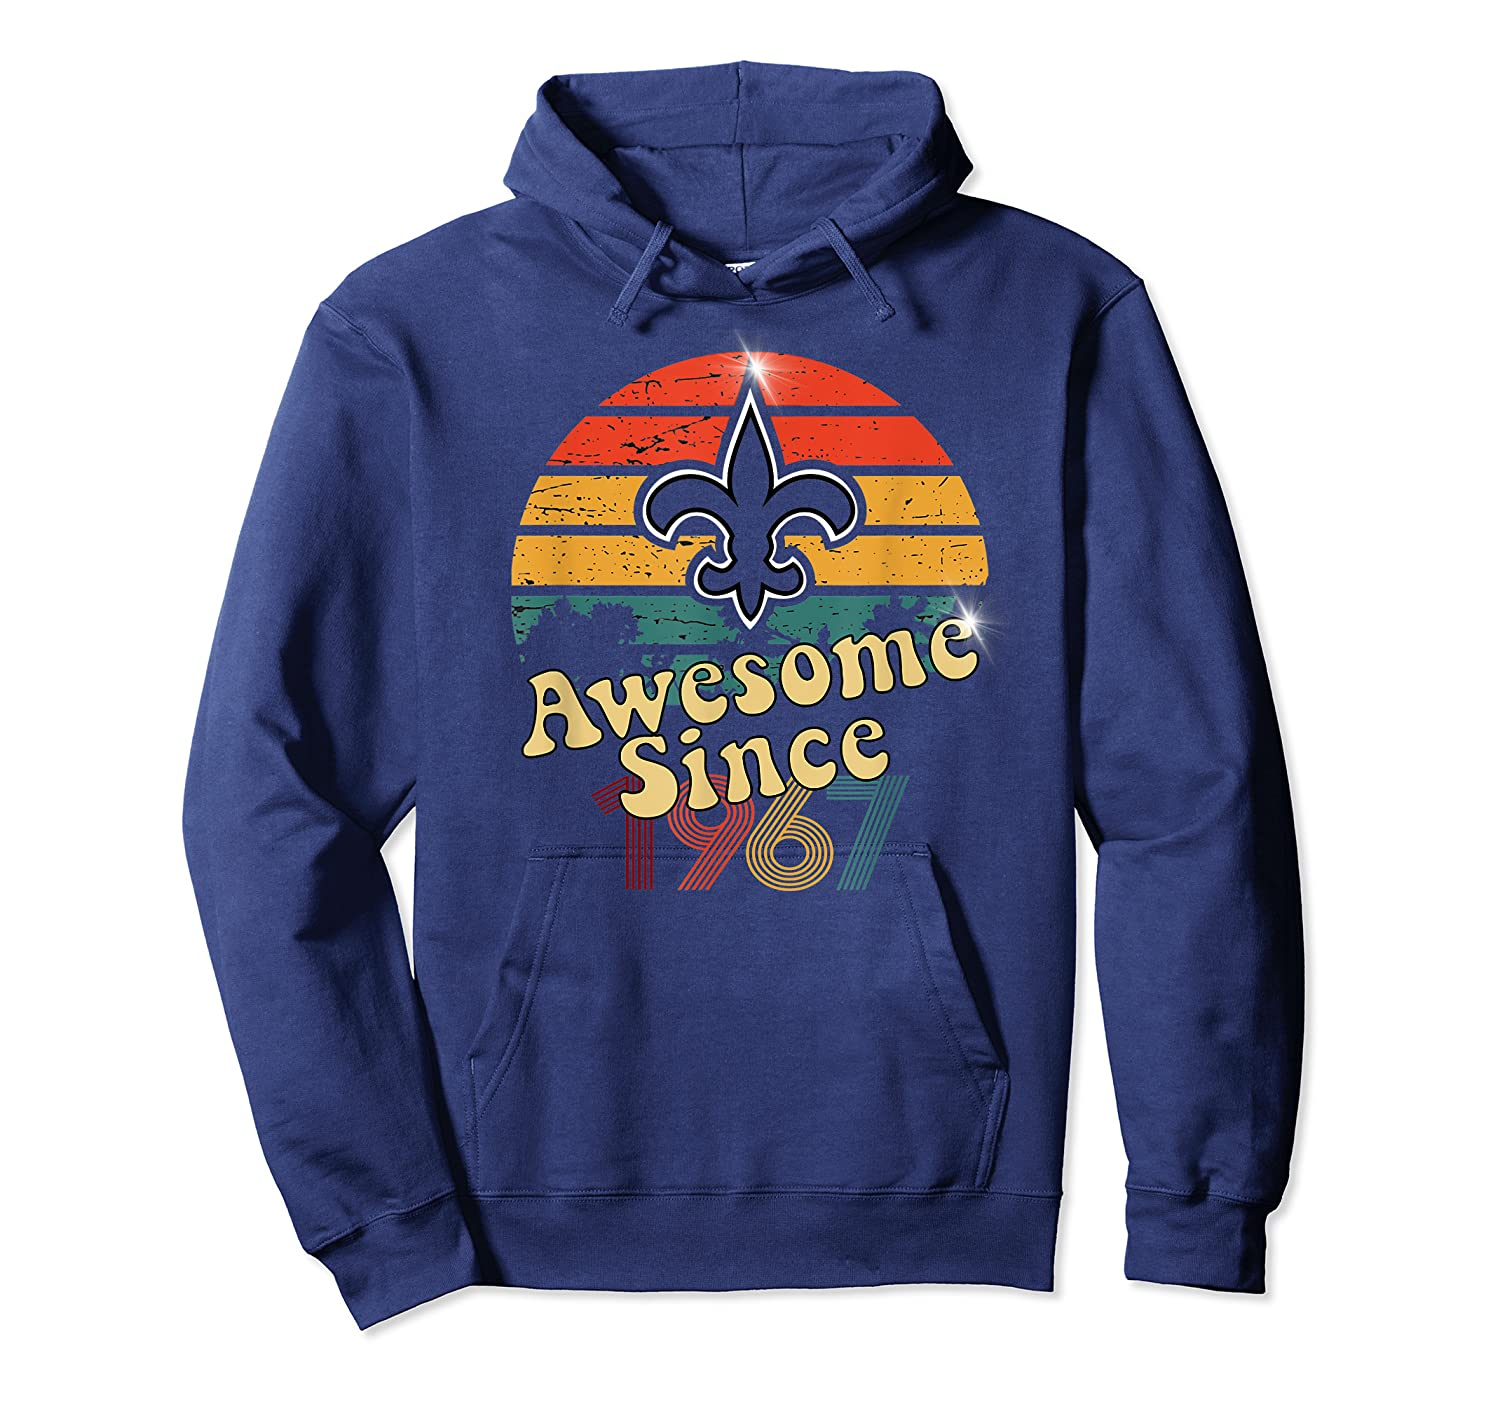 Vintage Saints Awesome Since 1967 New Orleans Football Retro Shirts Unisex Pullover Hoodie